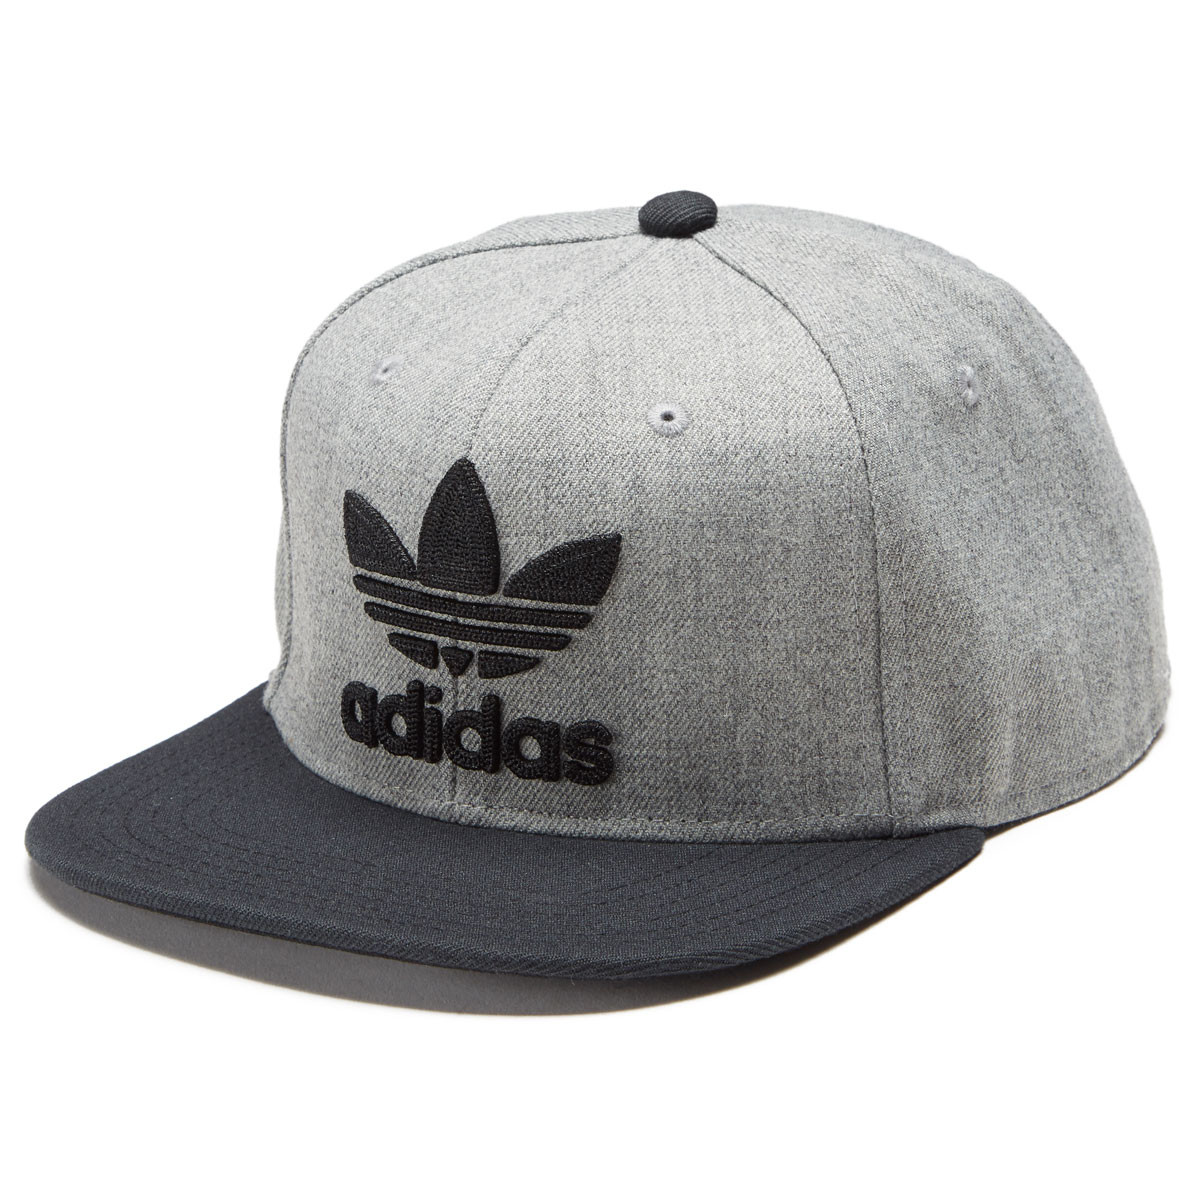 1ef6caebec6c9d Adidas Men's Originals Trefoil Chain Snapback Hat - Heather Grey/Black